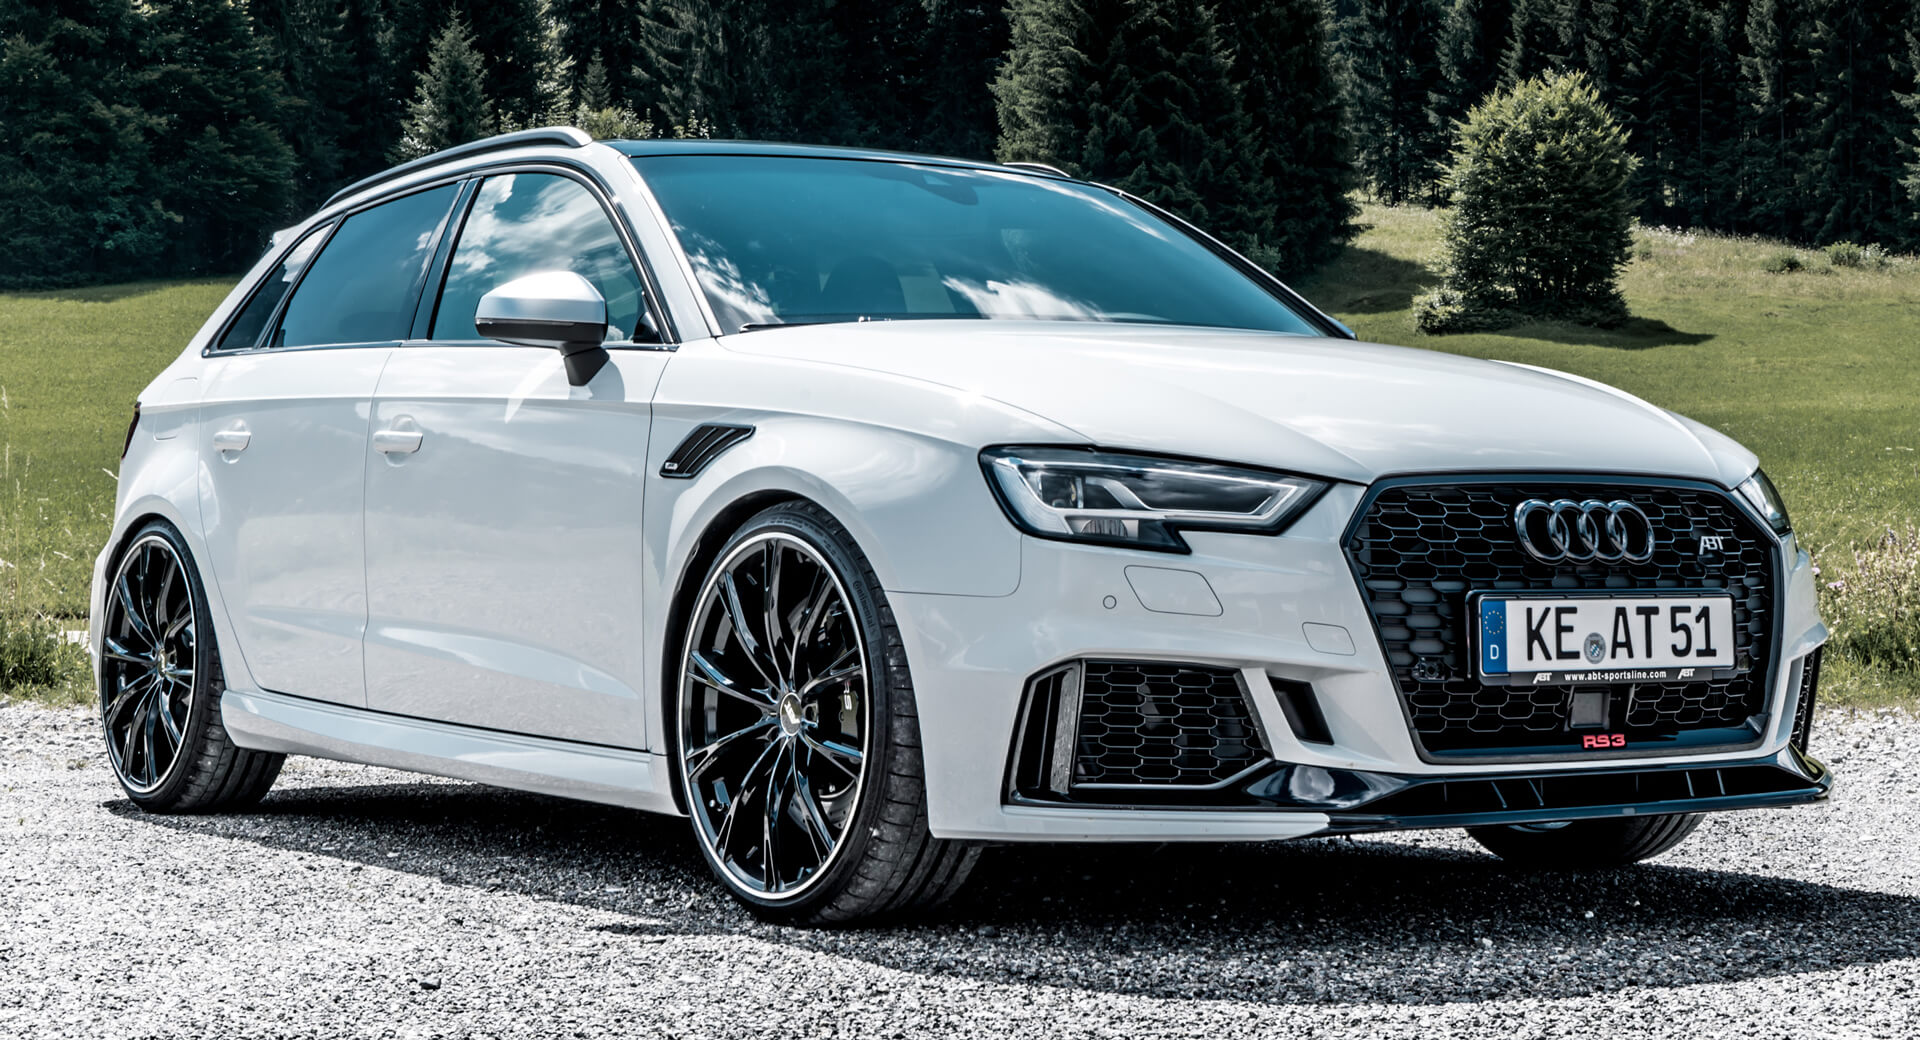 abt 39 s audi rs3 sportback is as quick to 100km h as. Black Bedroom Furniture Sets. Home Design Ideas